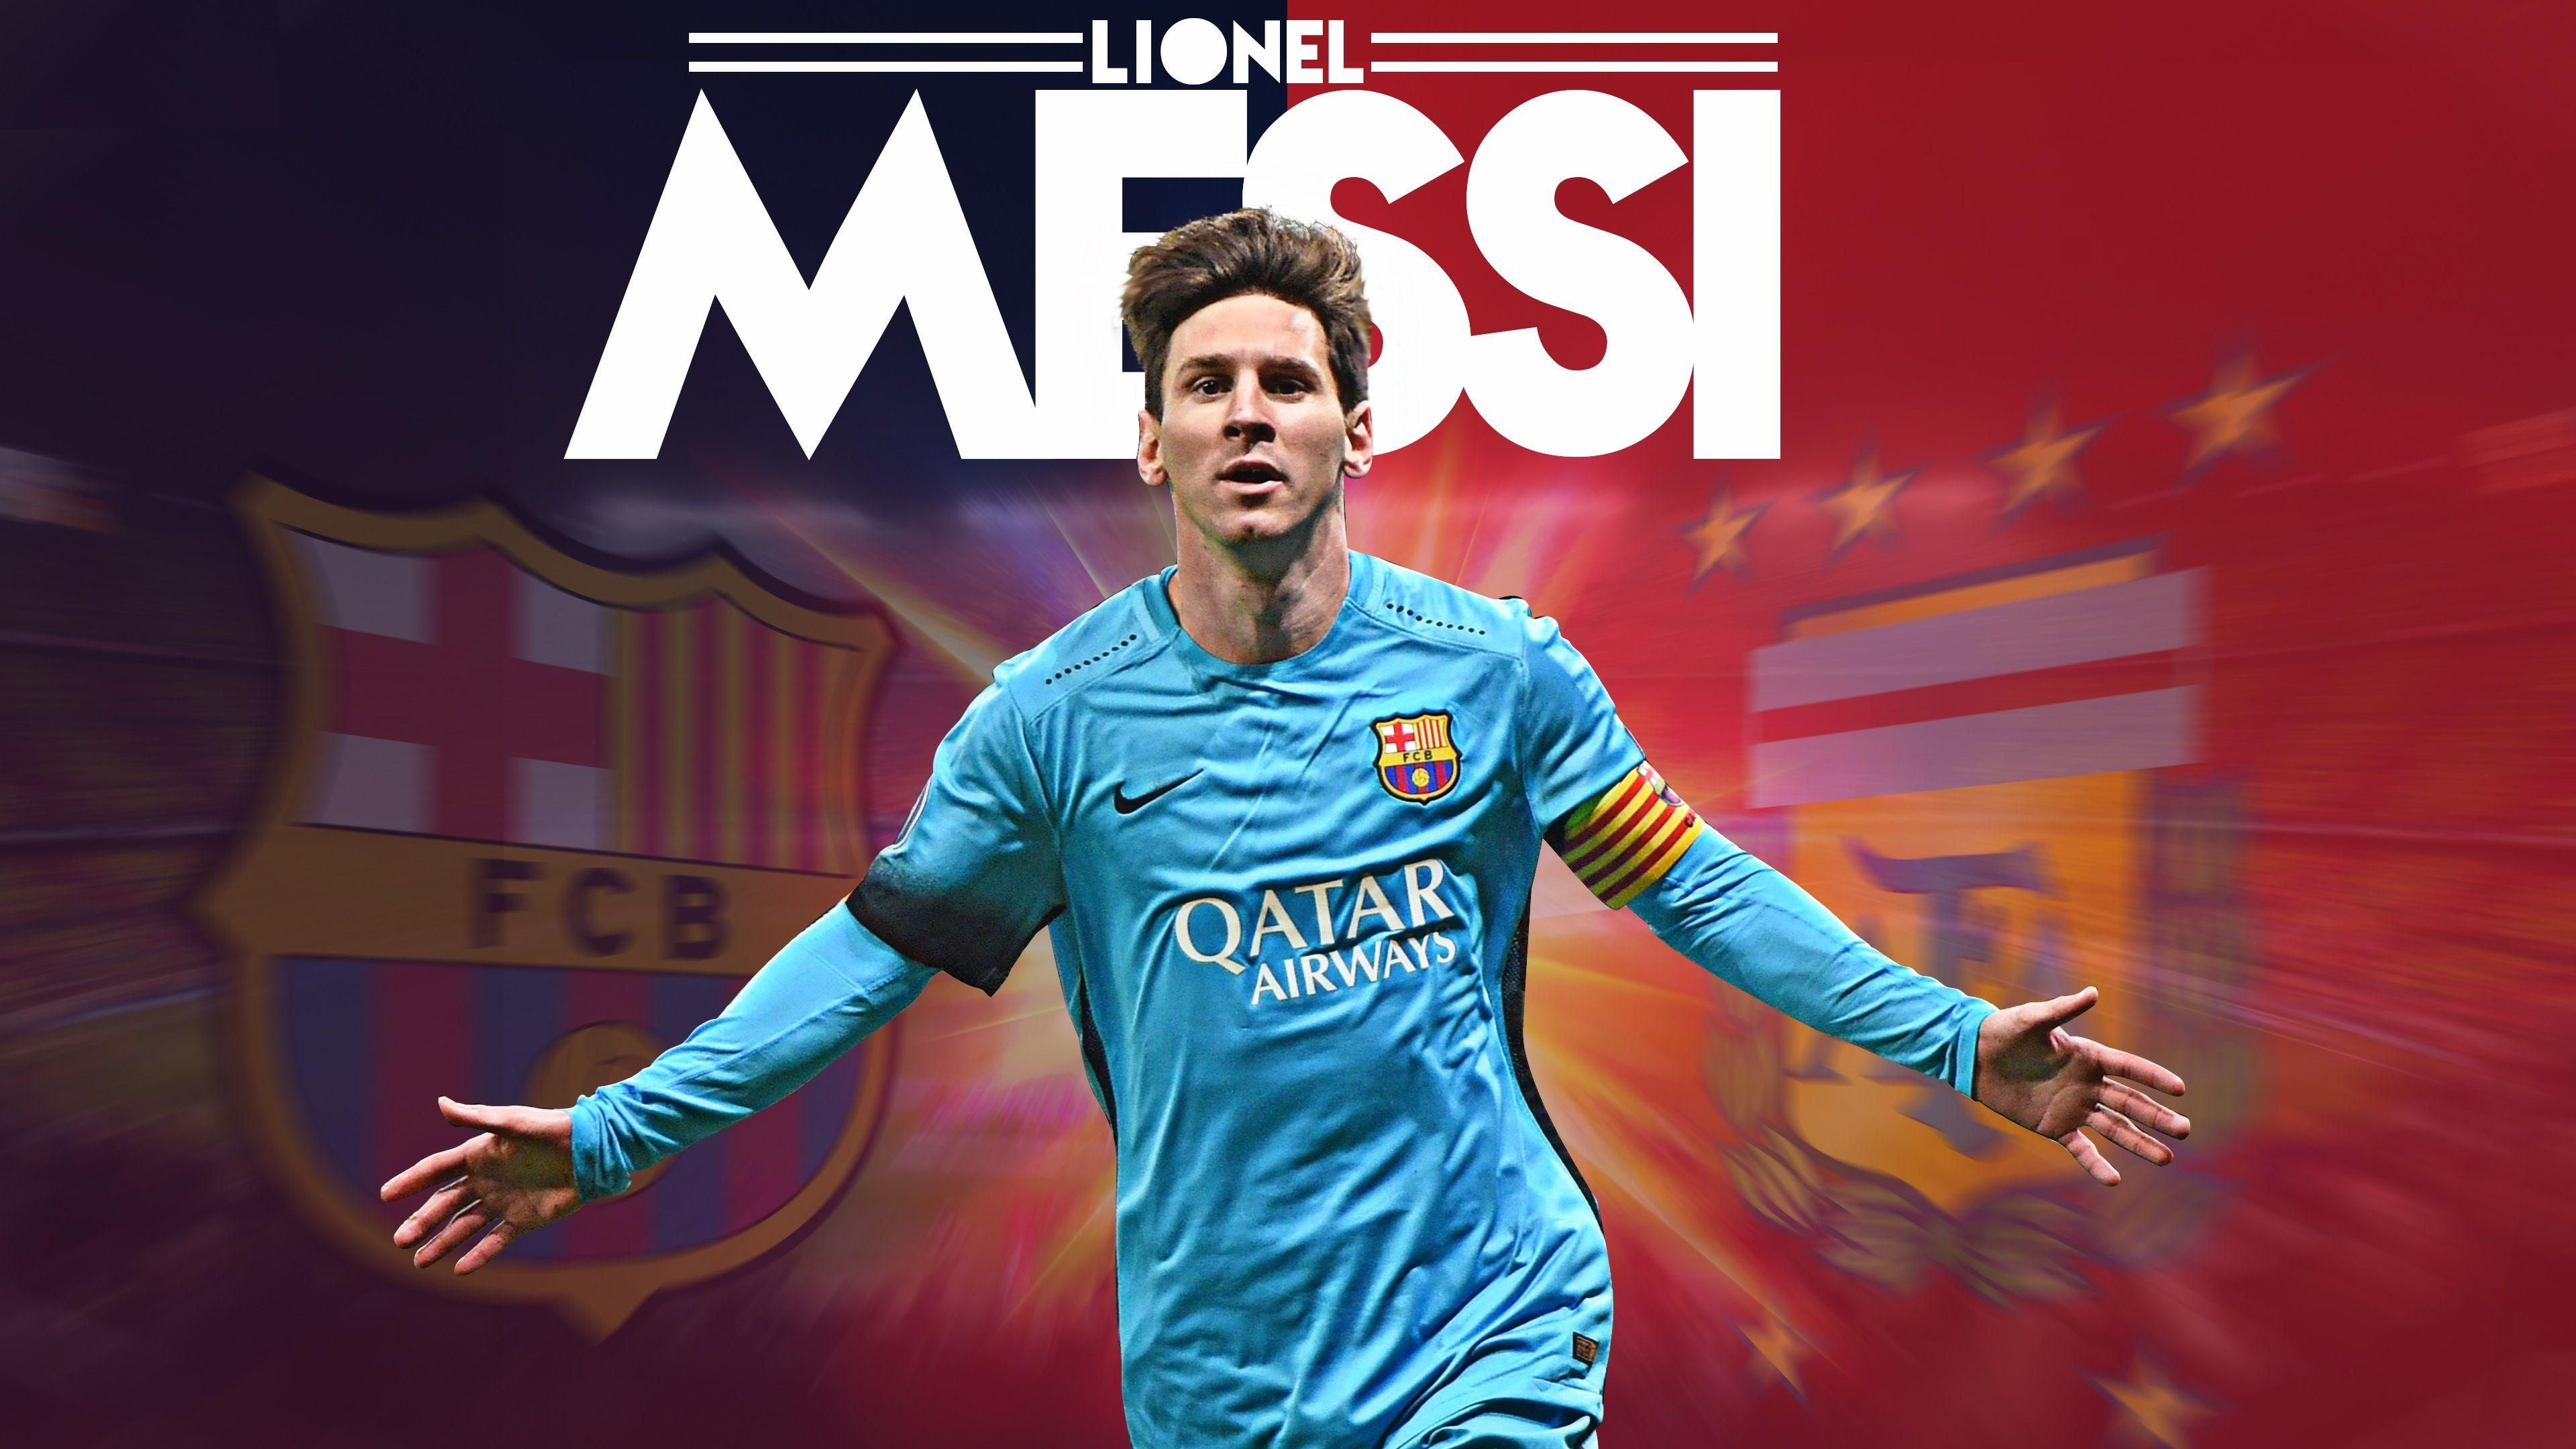 Lionel Messi 2017 Wallpaper Hd In 2020 Lionel Messi Lionel